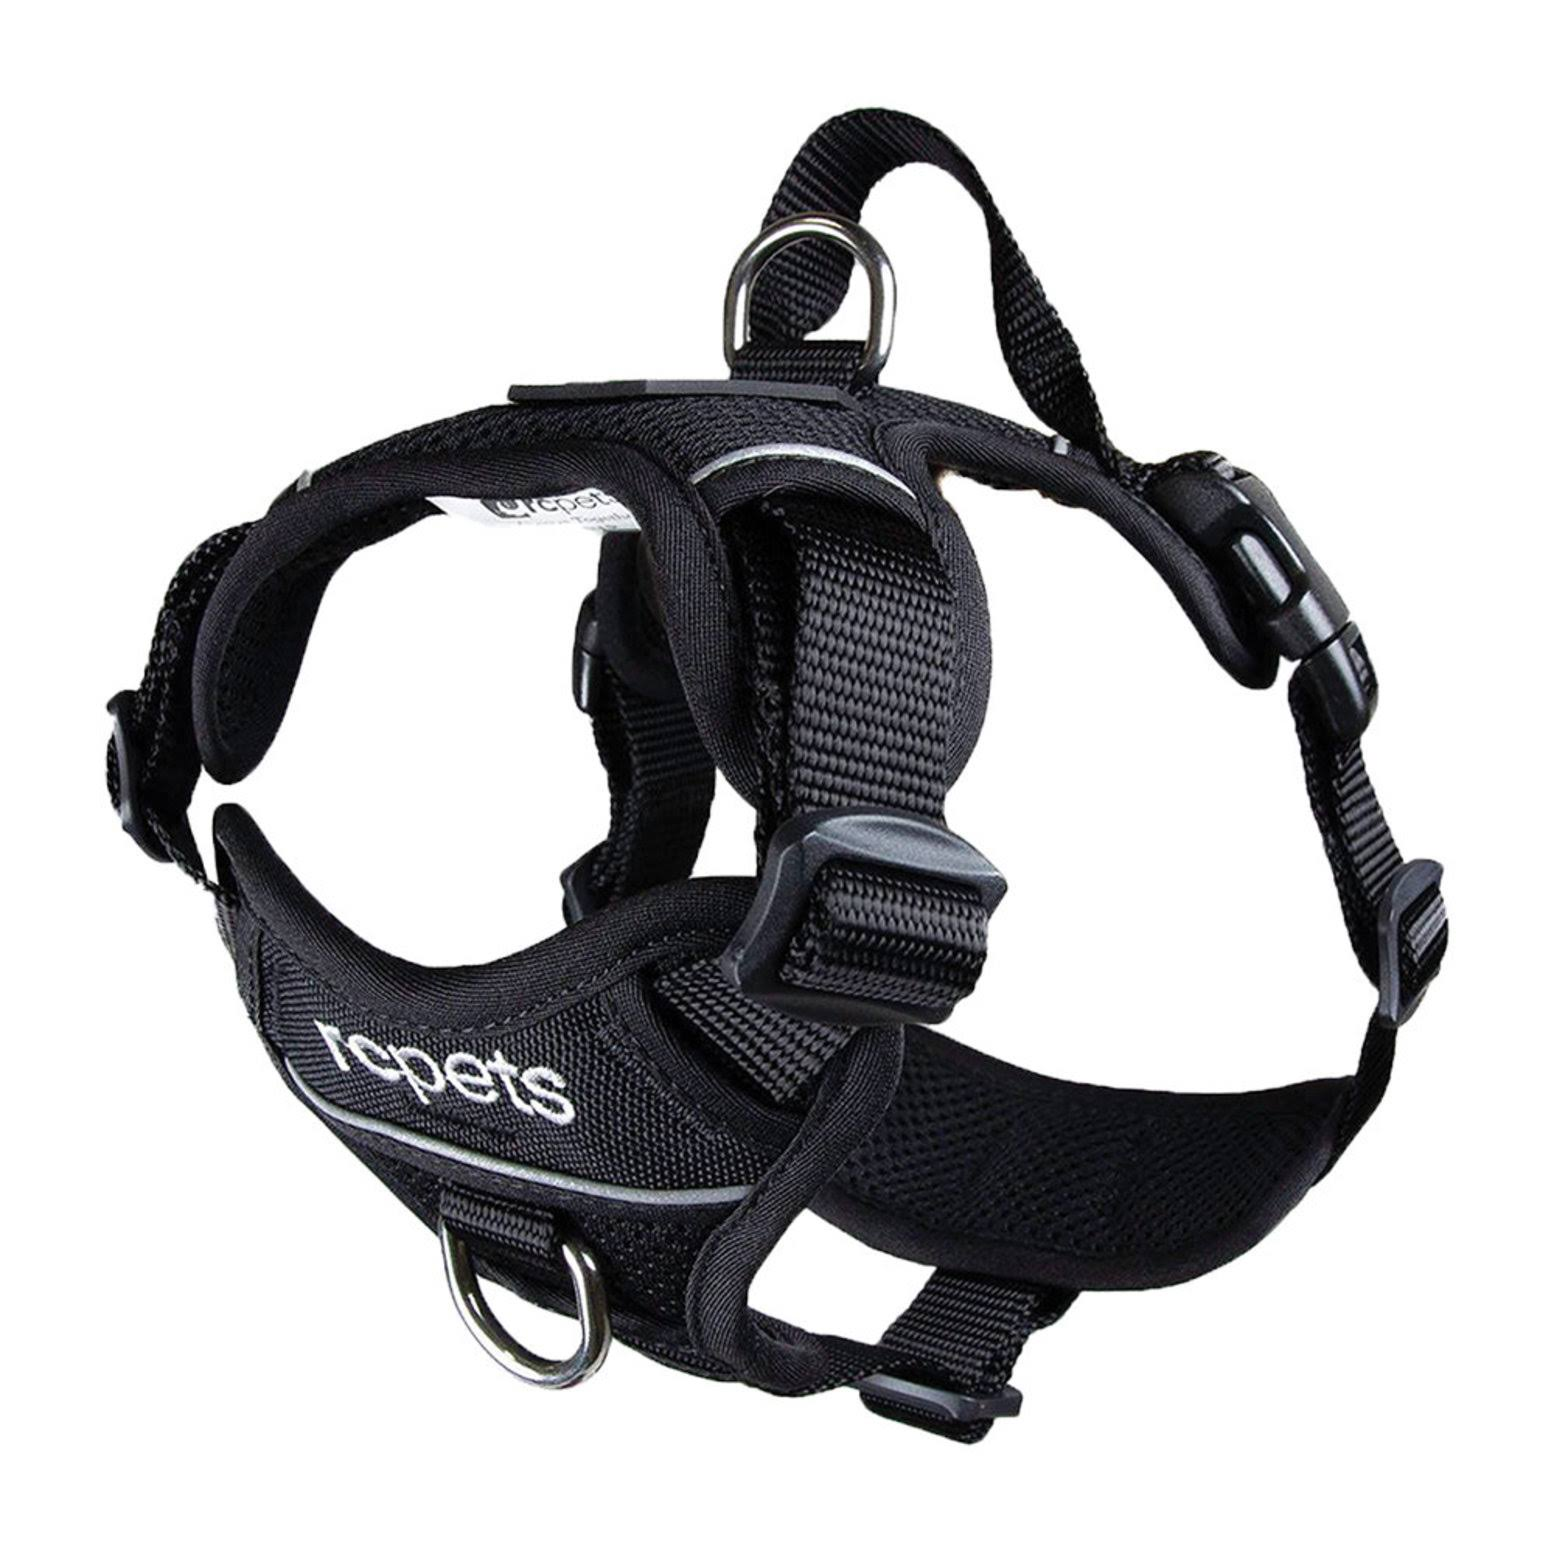 RC Pet Products Momentum Control Dog Harness - Black - Medium